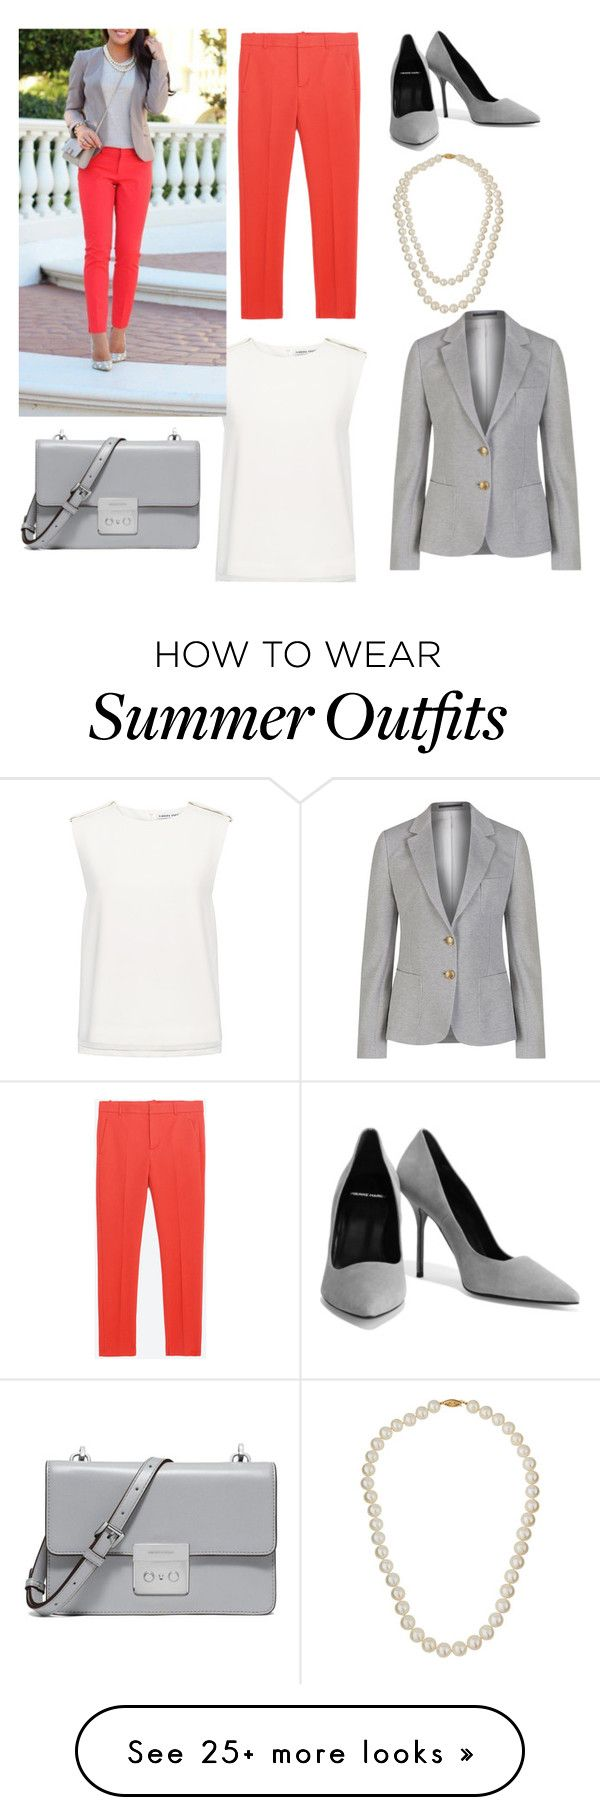 """Hello grey"" by alina-malina712 on Polyvore featuring Zara, Pierre Hardy, Finders Keepers, GANT, Belpearl and MICHAEL Michael Kors"